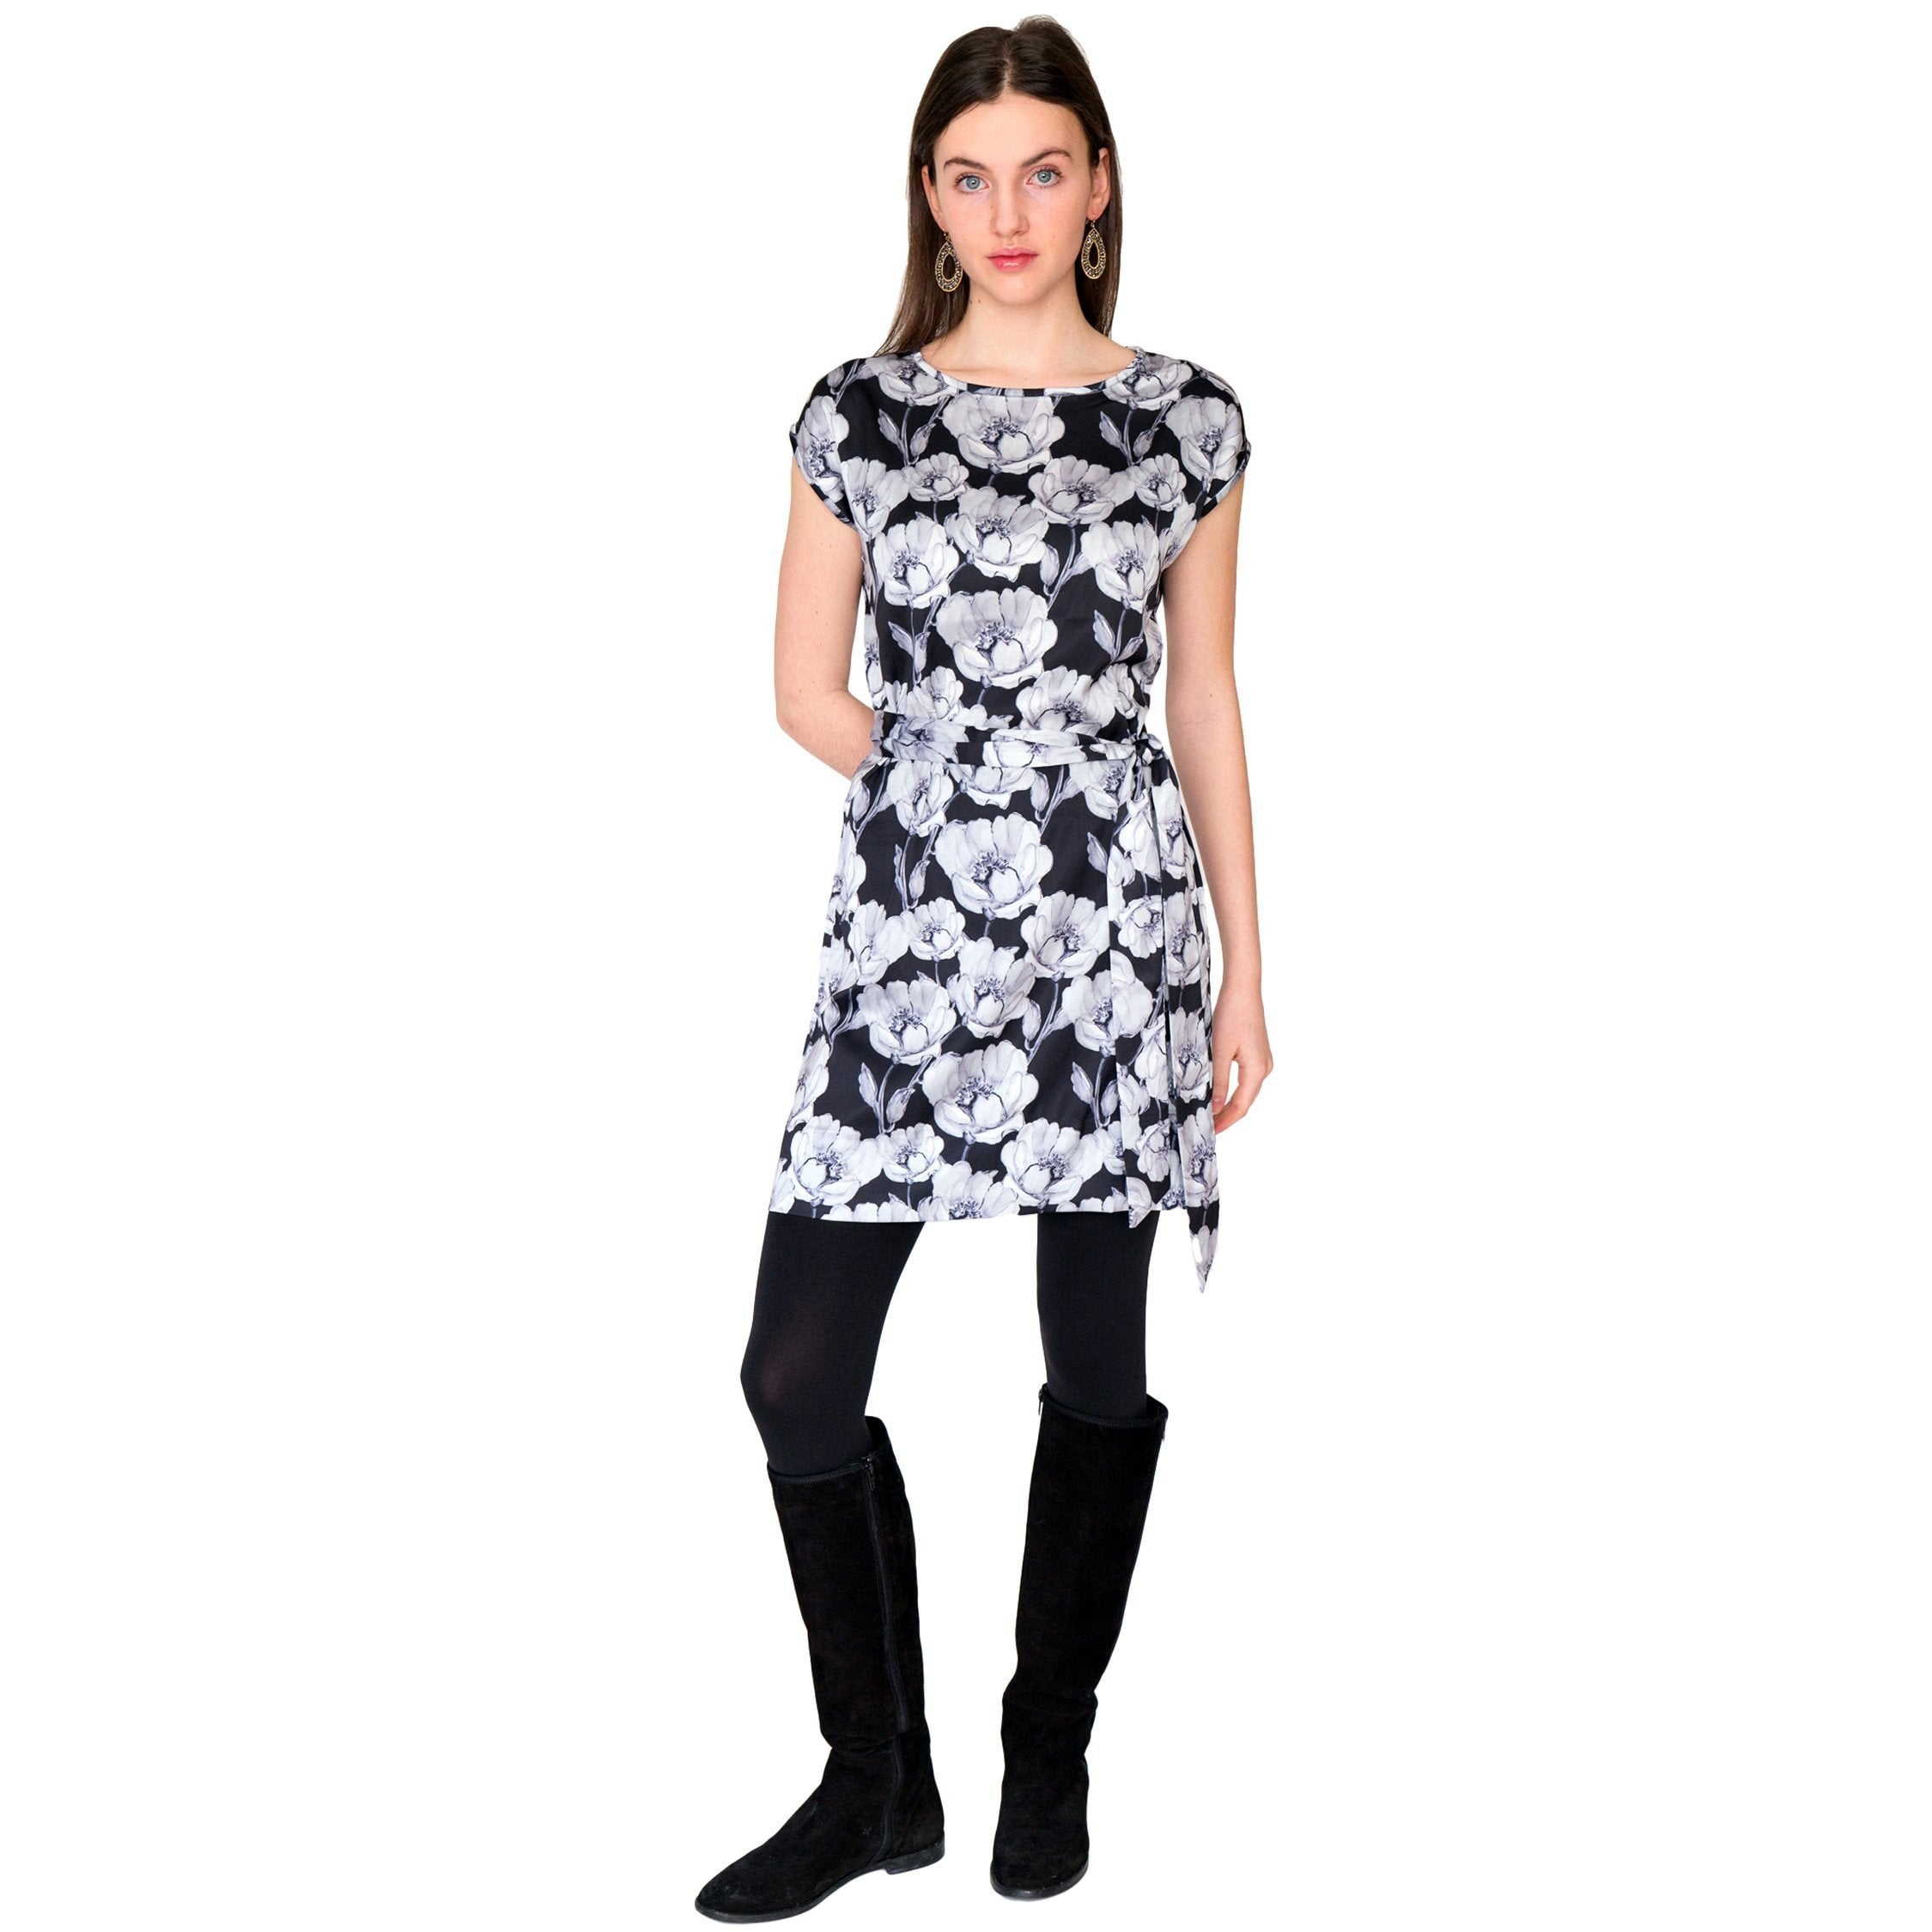 Avery Cap Sleeve Dress in Grey Floral - Elizabeth Ackerman New York